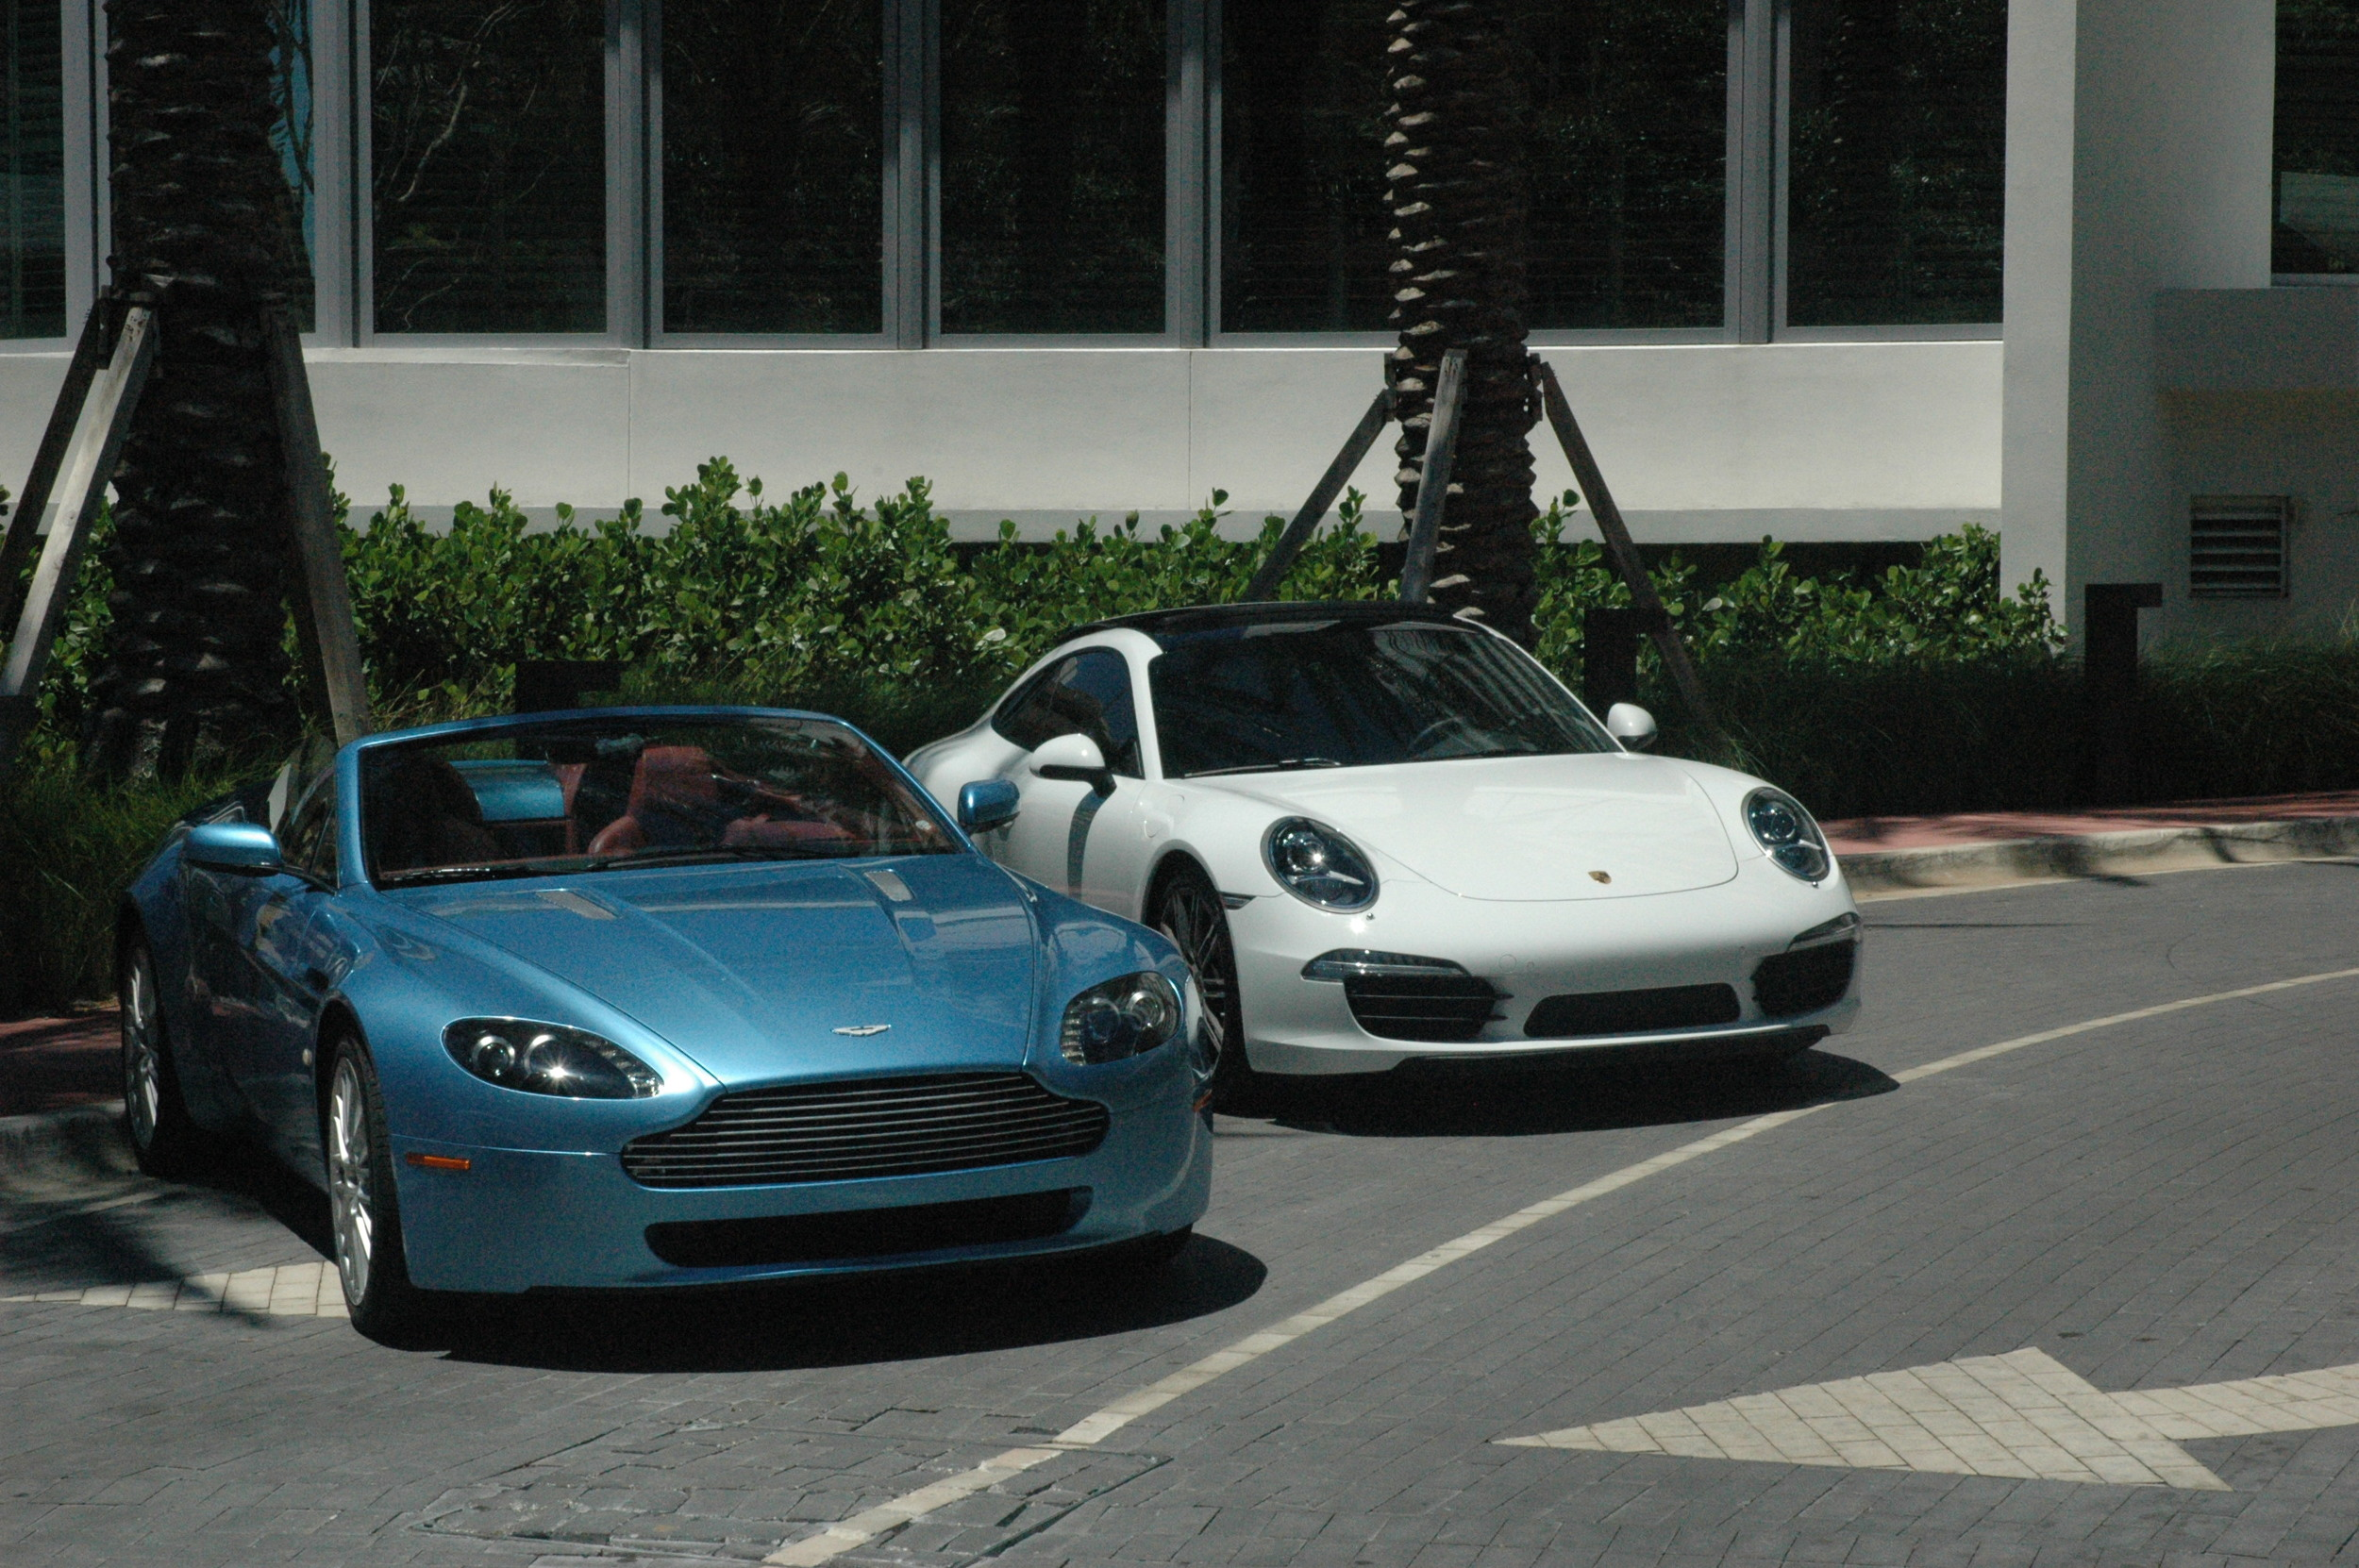 Aston Martin and a Porsche, outside a Miami Beach hotel.